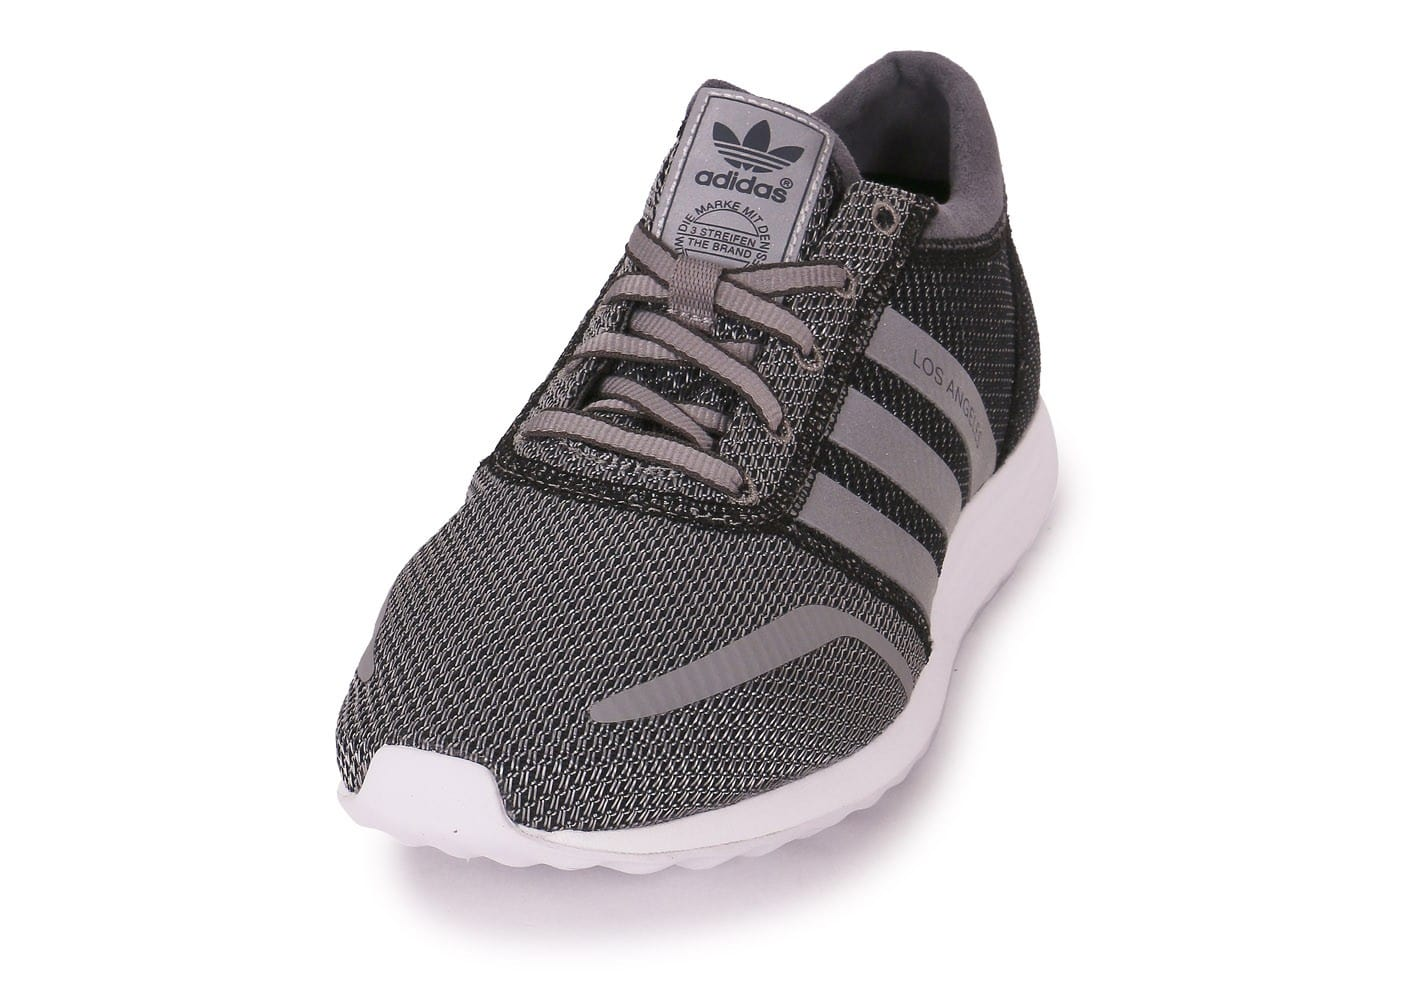 Chaussures adidas Los Angeles gris anthracite vue avant